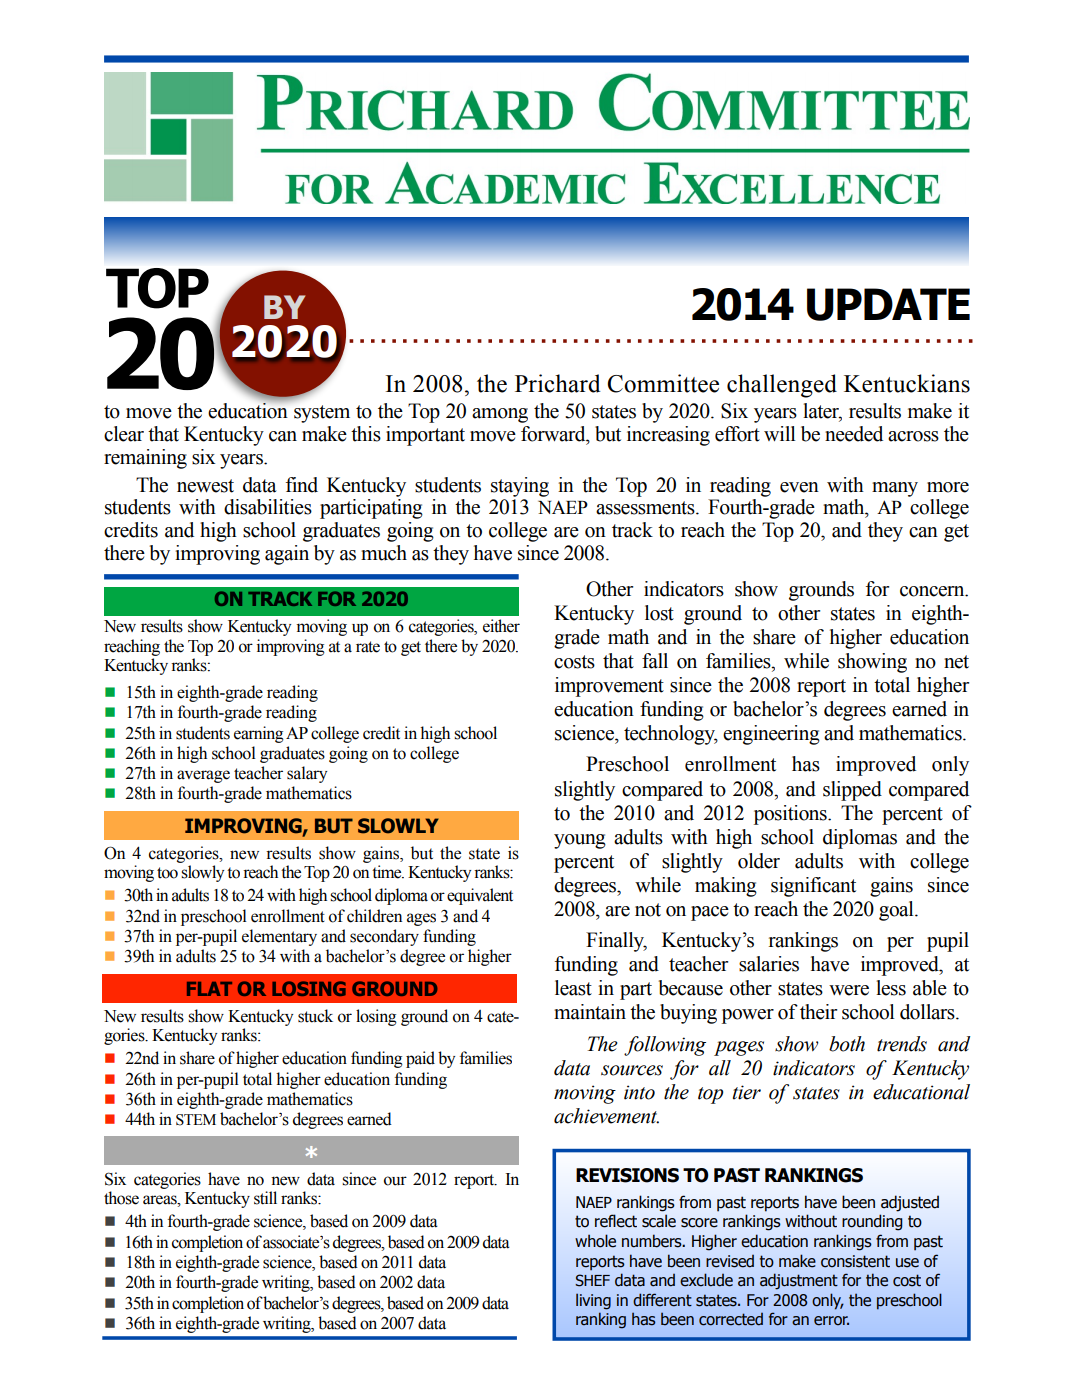 Achieving Top 20 by 2020: 2014 update